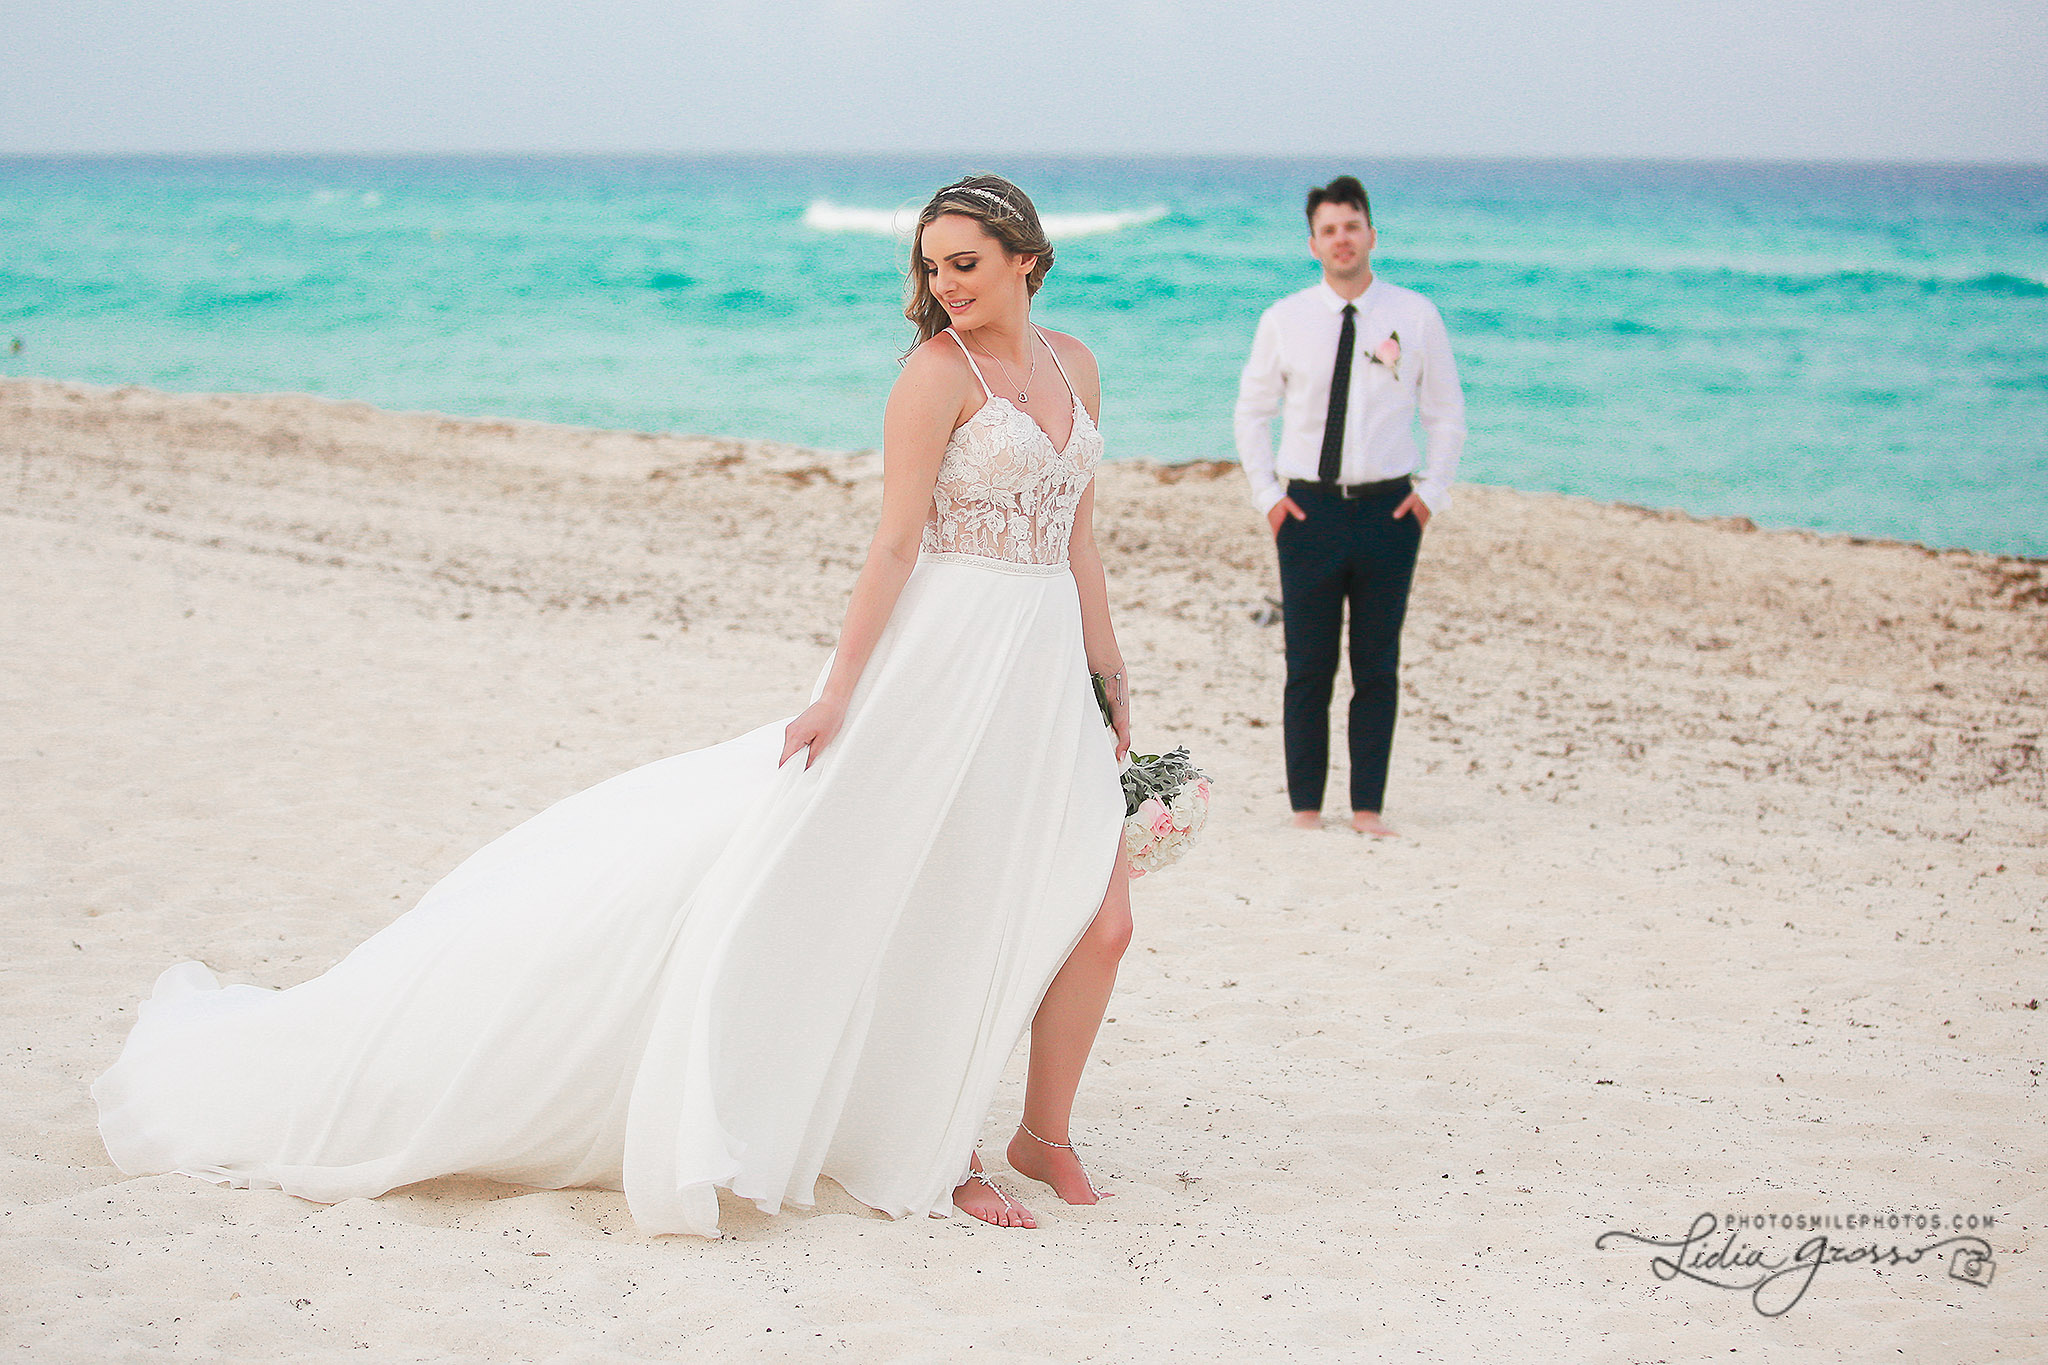 Kaitlyn-Kevin-wedding-Cancun-391s.jpg